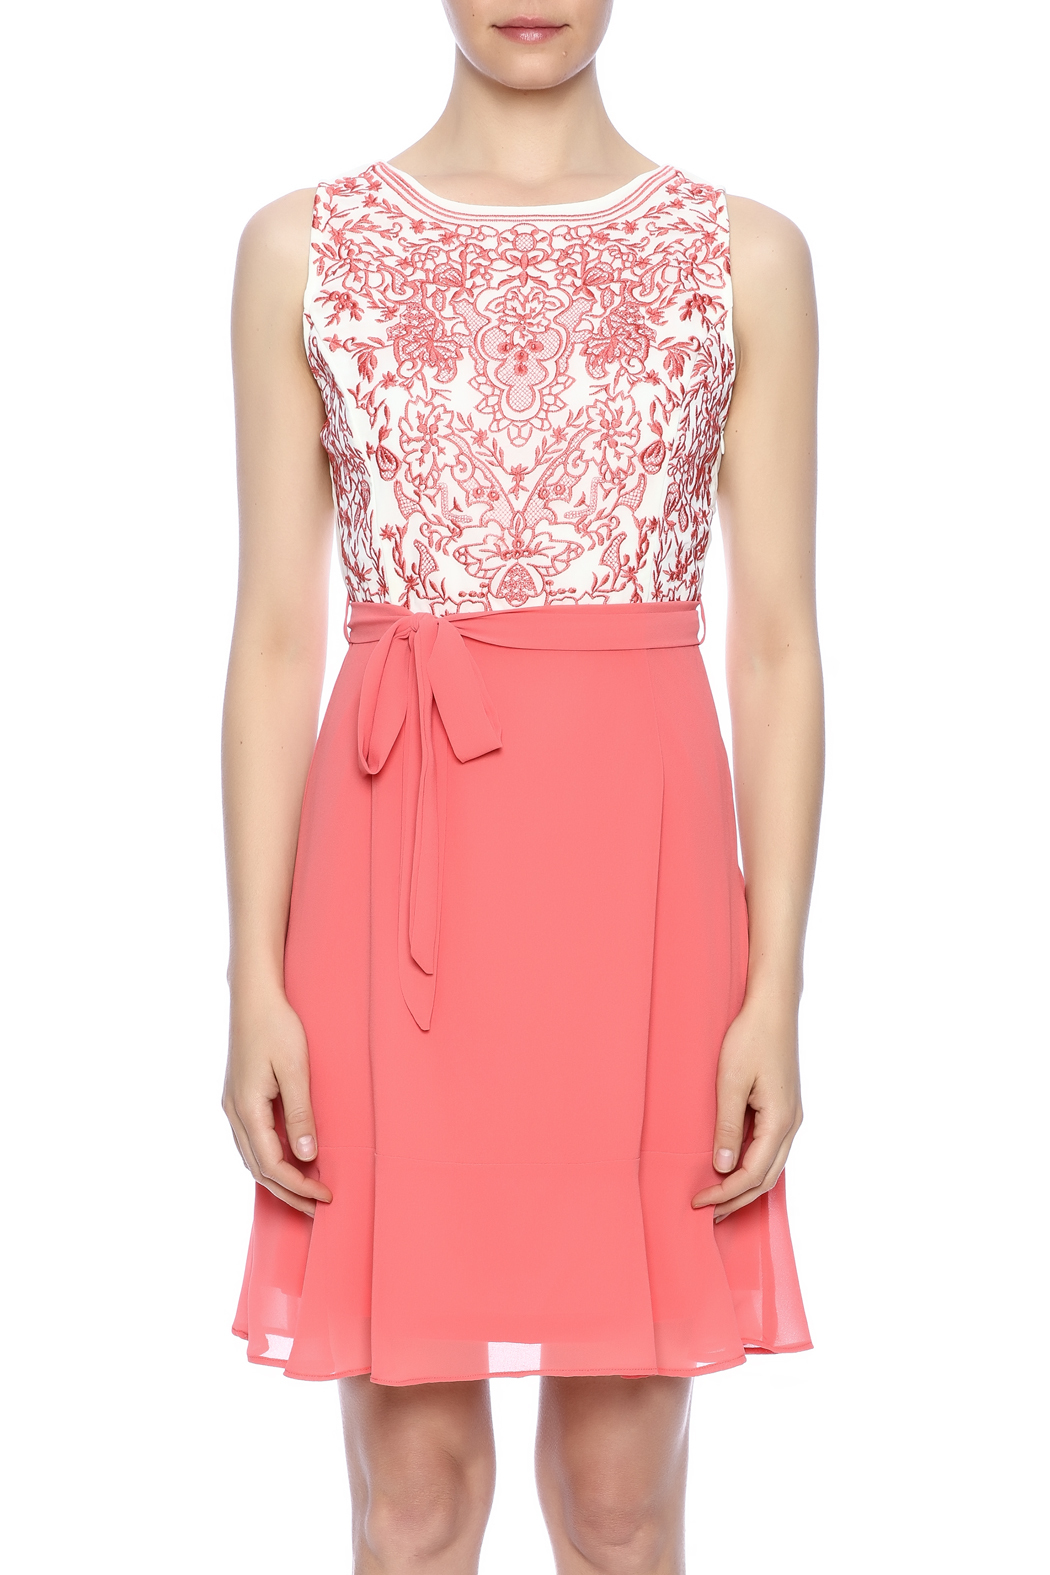 Ya Los Angeles Coral Embroidered Dress - Side Cropped Image